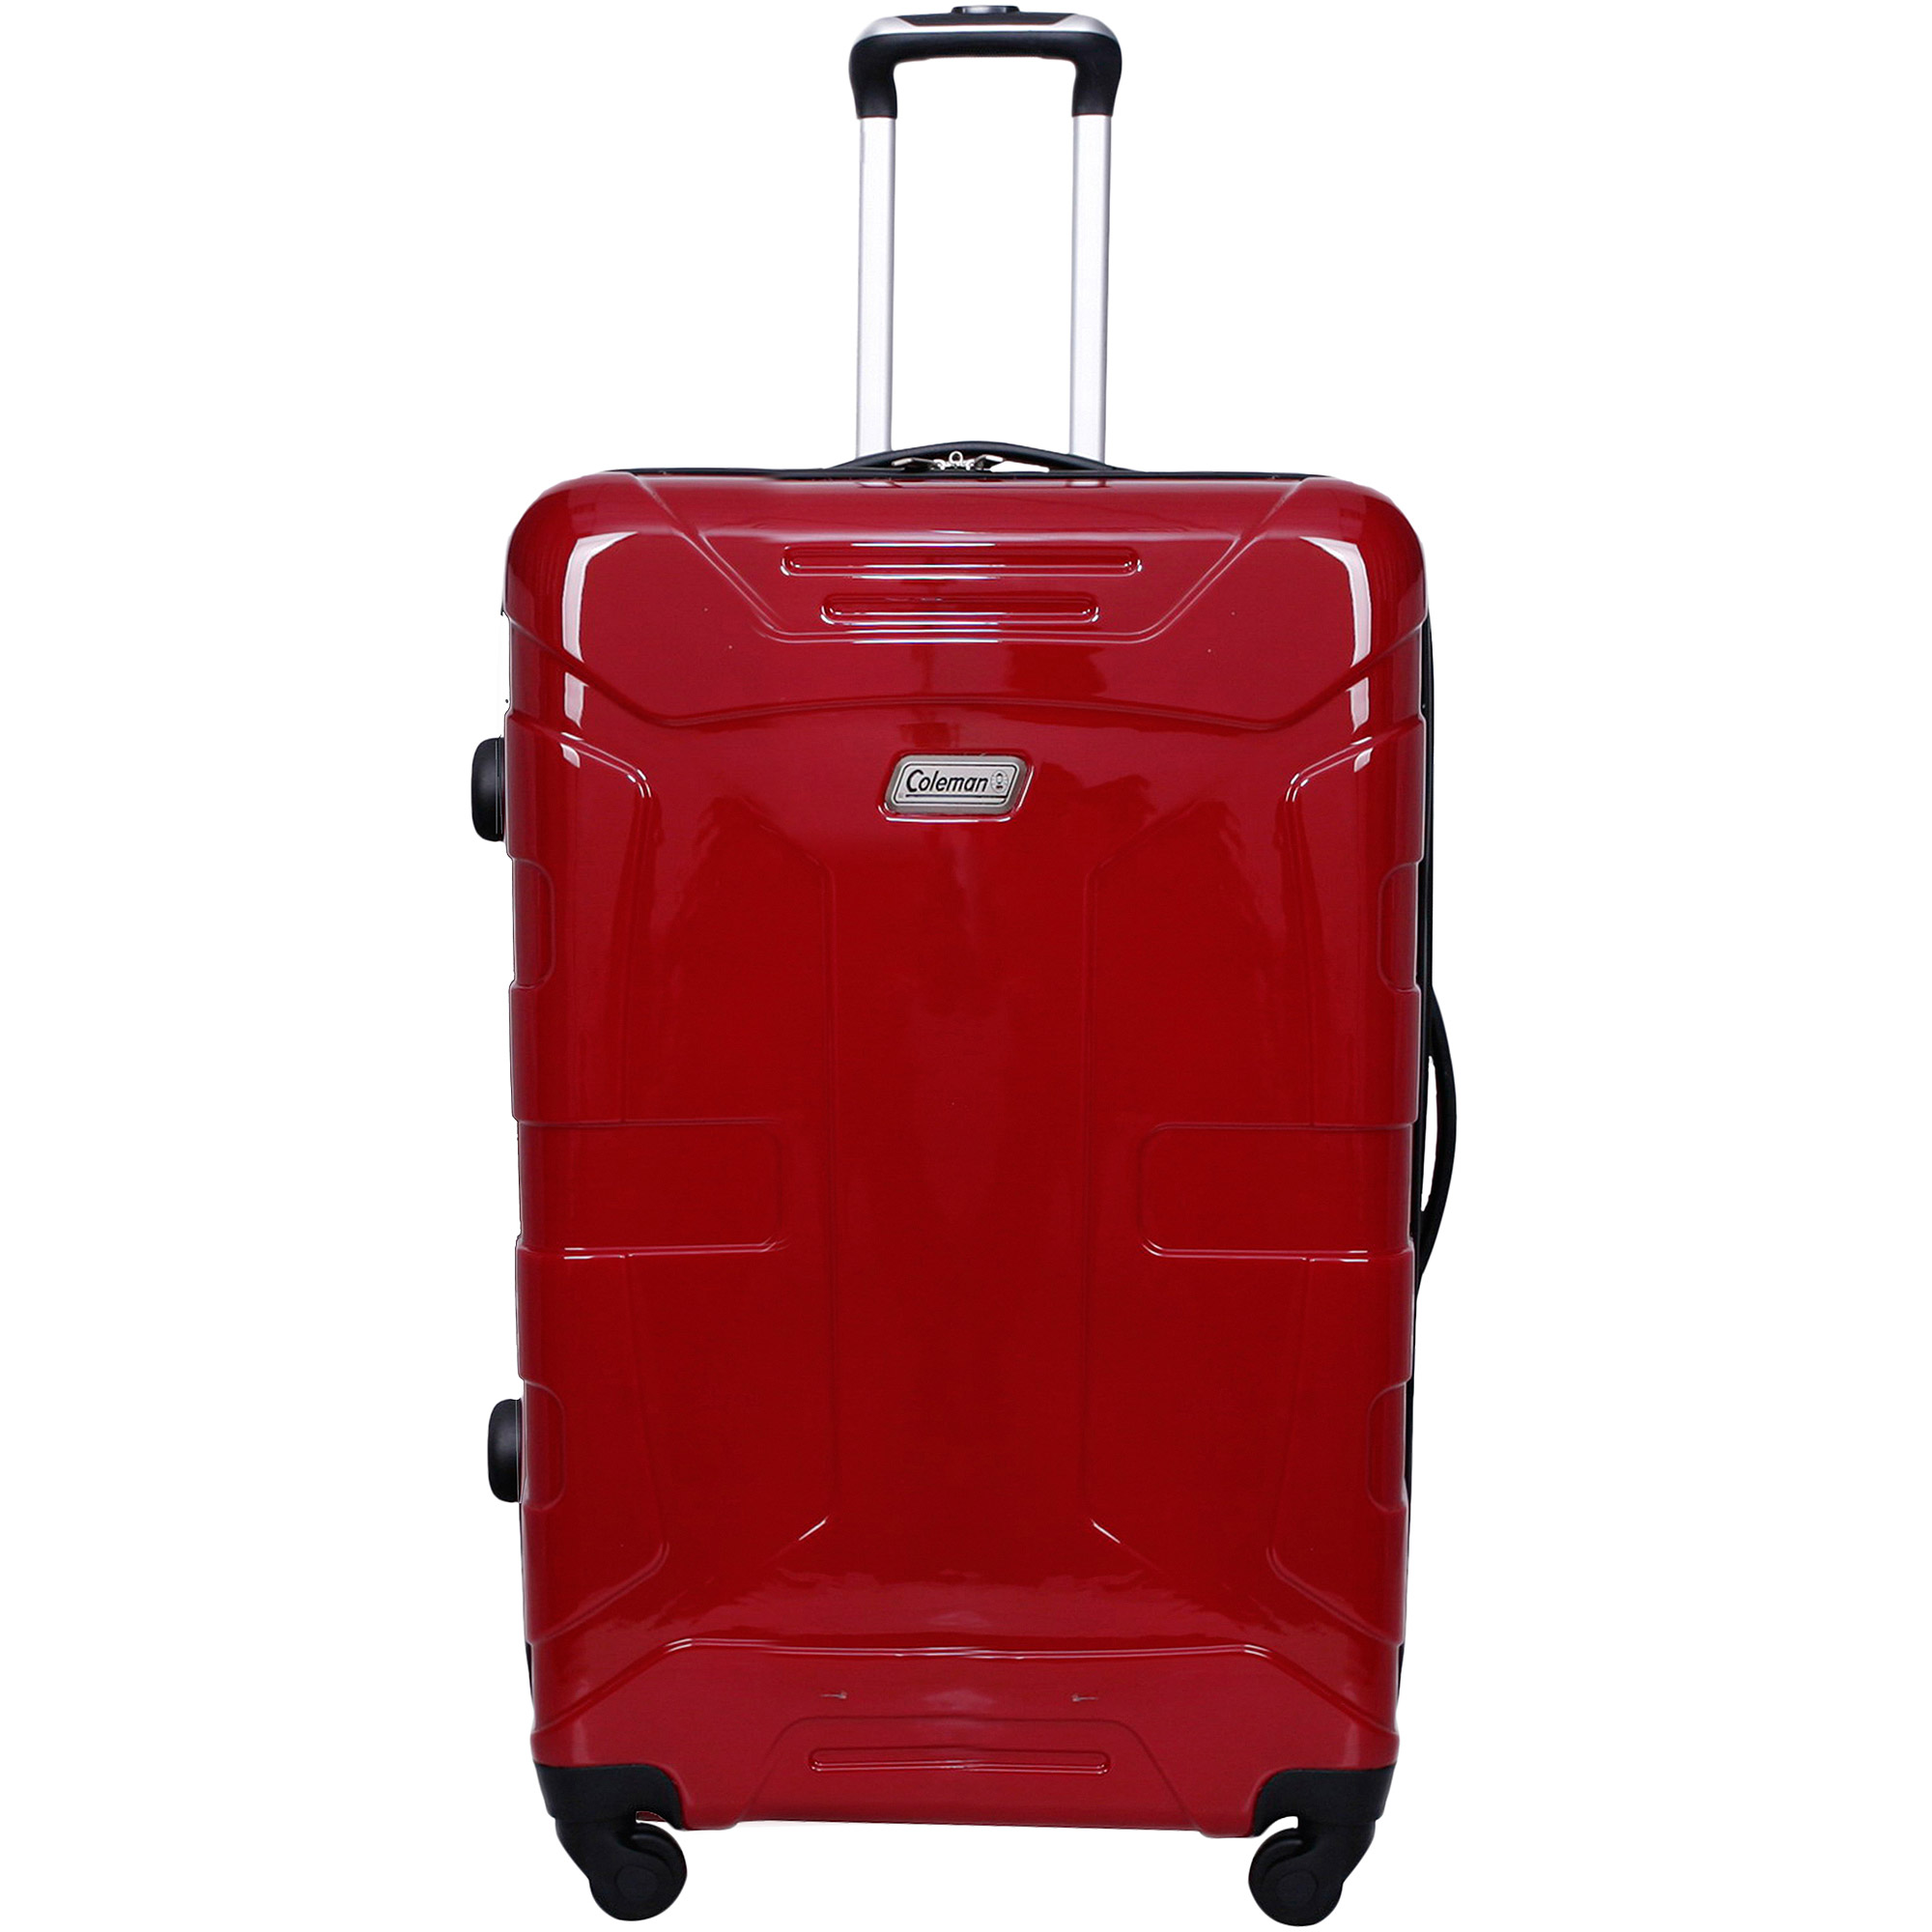 Hardside Luggage - Walmart.com